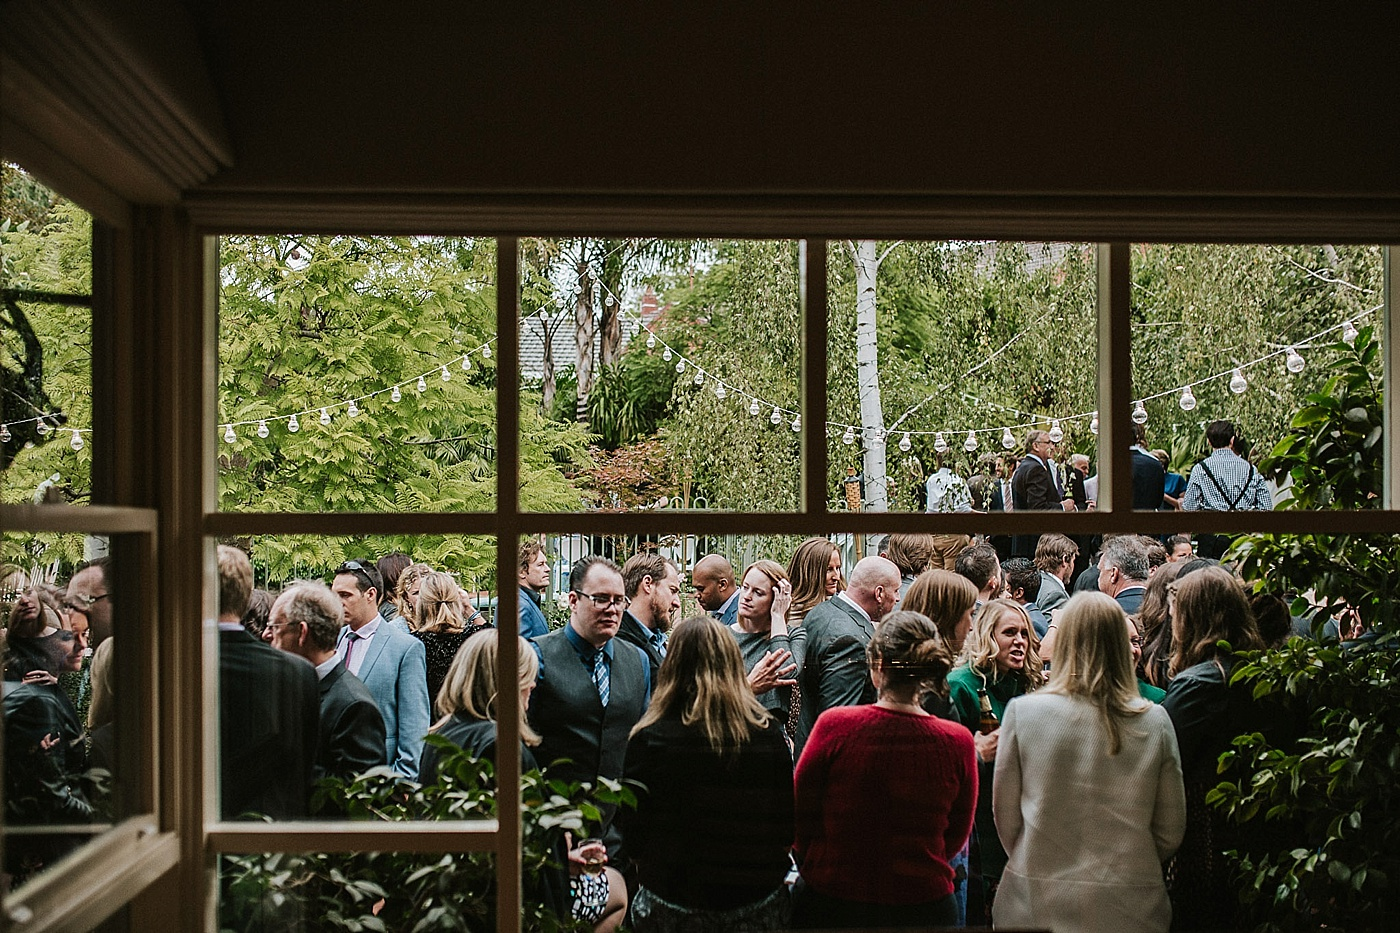 Brooke&David_Melbourne-Quirky-Relaxed-Fun-Casual-Backyard-Wedding_Melbourne-Wedding-Photography-77